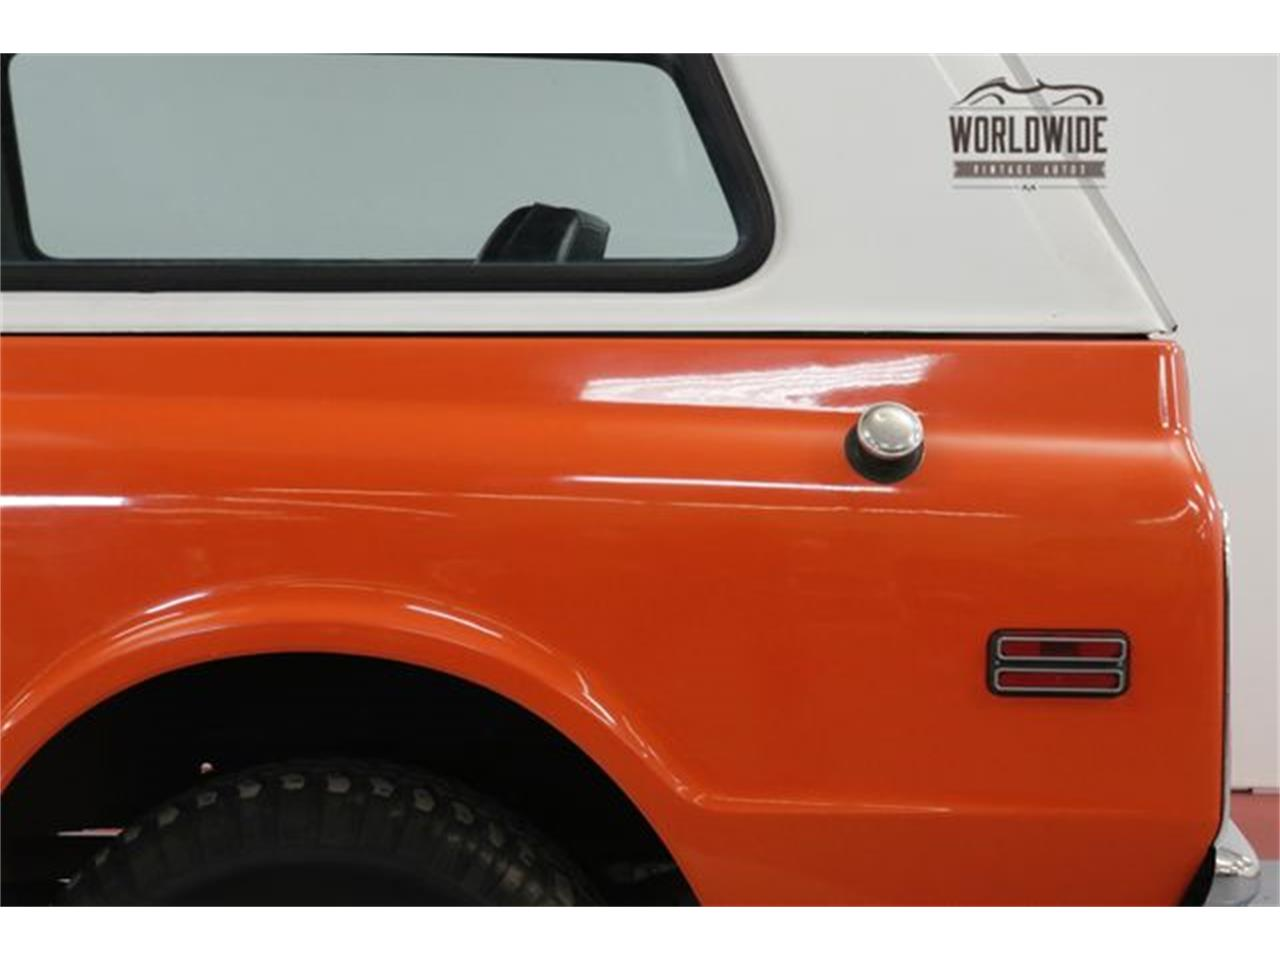 Large Picture of Classic '70 GMC Jimmy located in Colorado - $27,900.00 Offered by Worldwide Vintage Autos - PH20